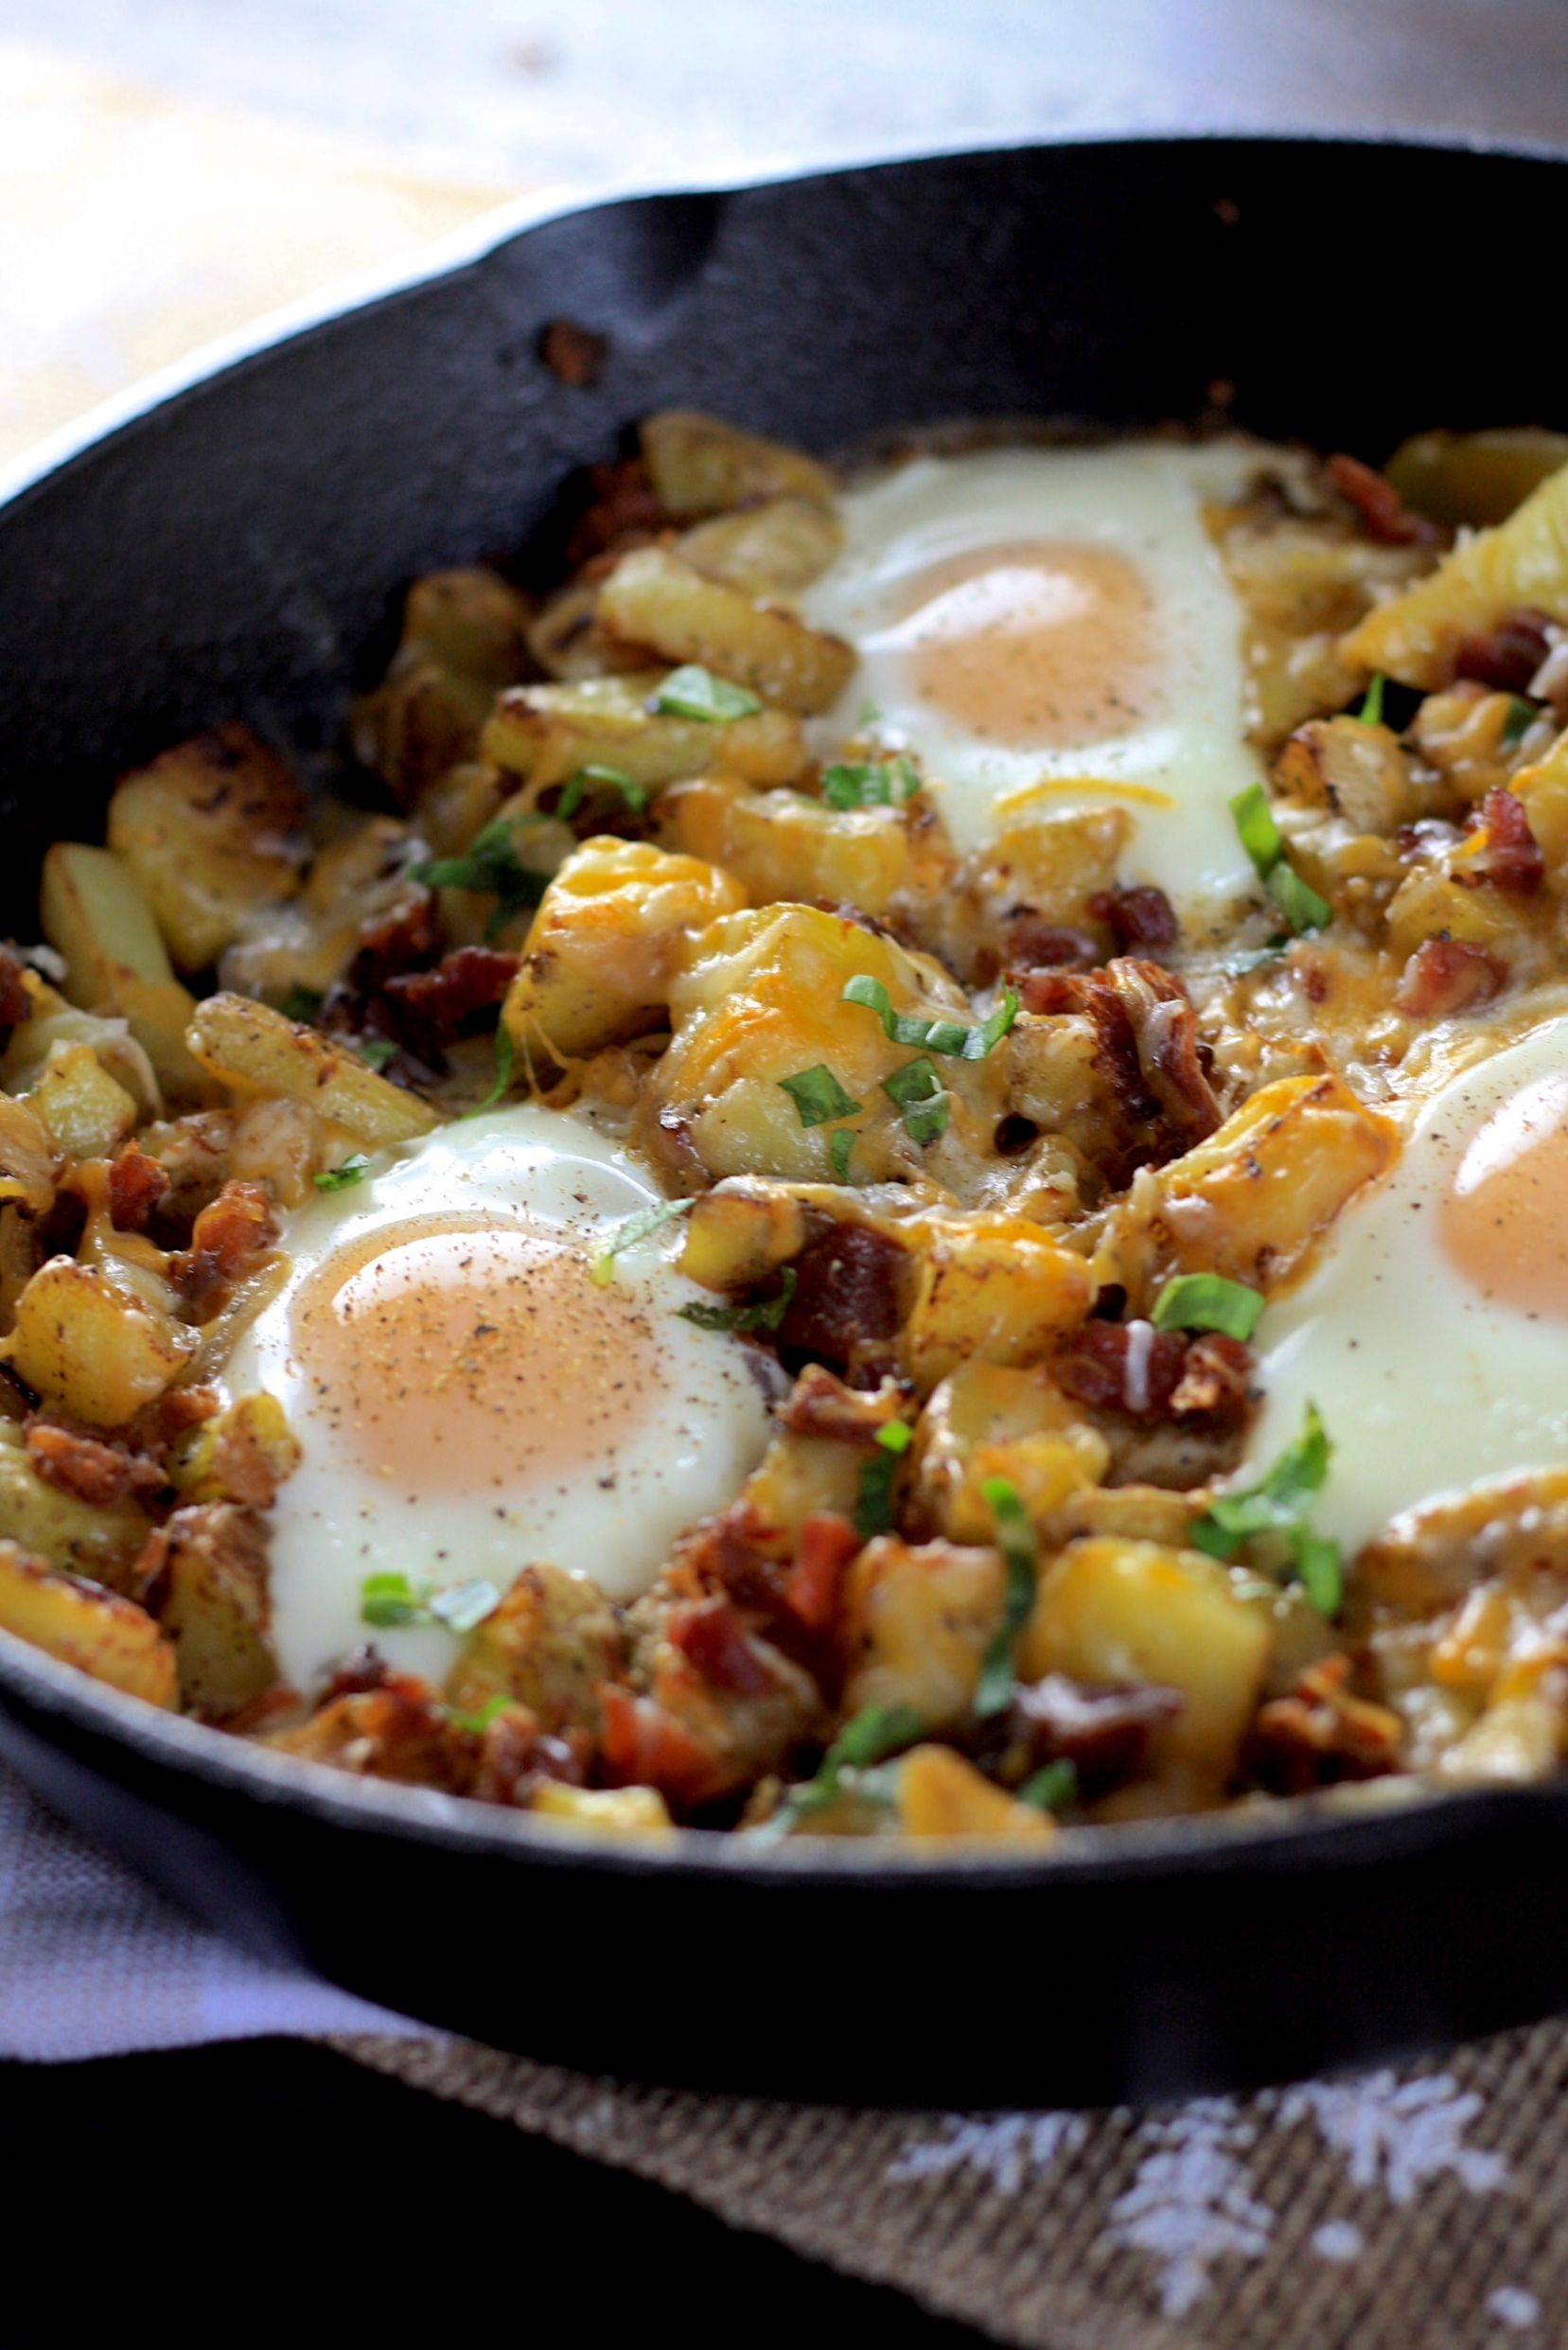 Skillet Baked Eggs with Country Potatoes and Bacon